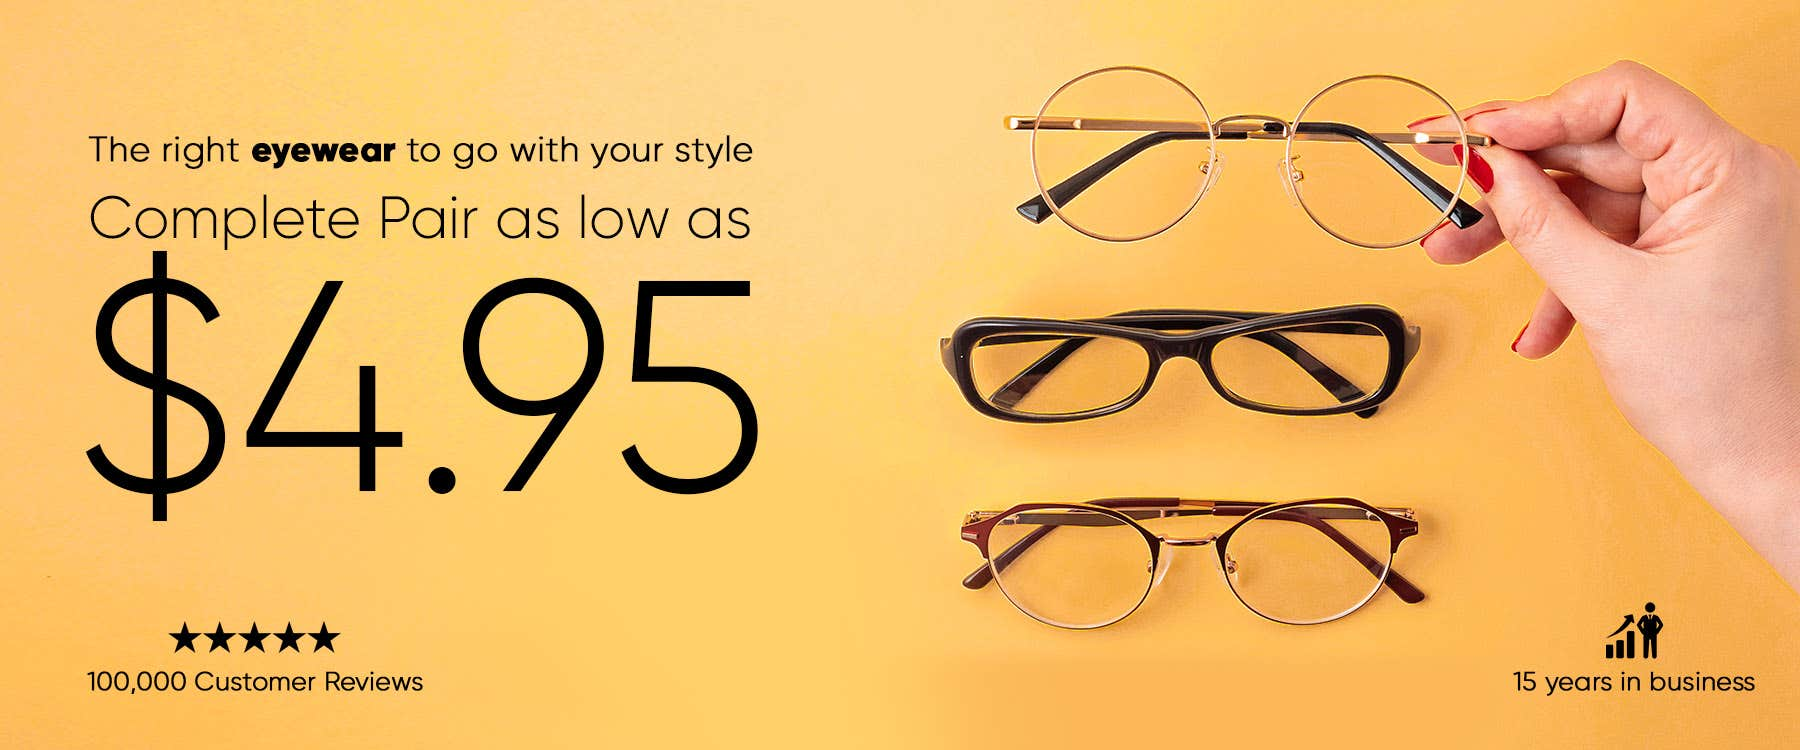 Complete pair of eyeglasses for just $4.95